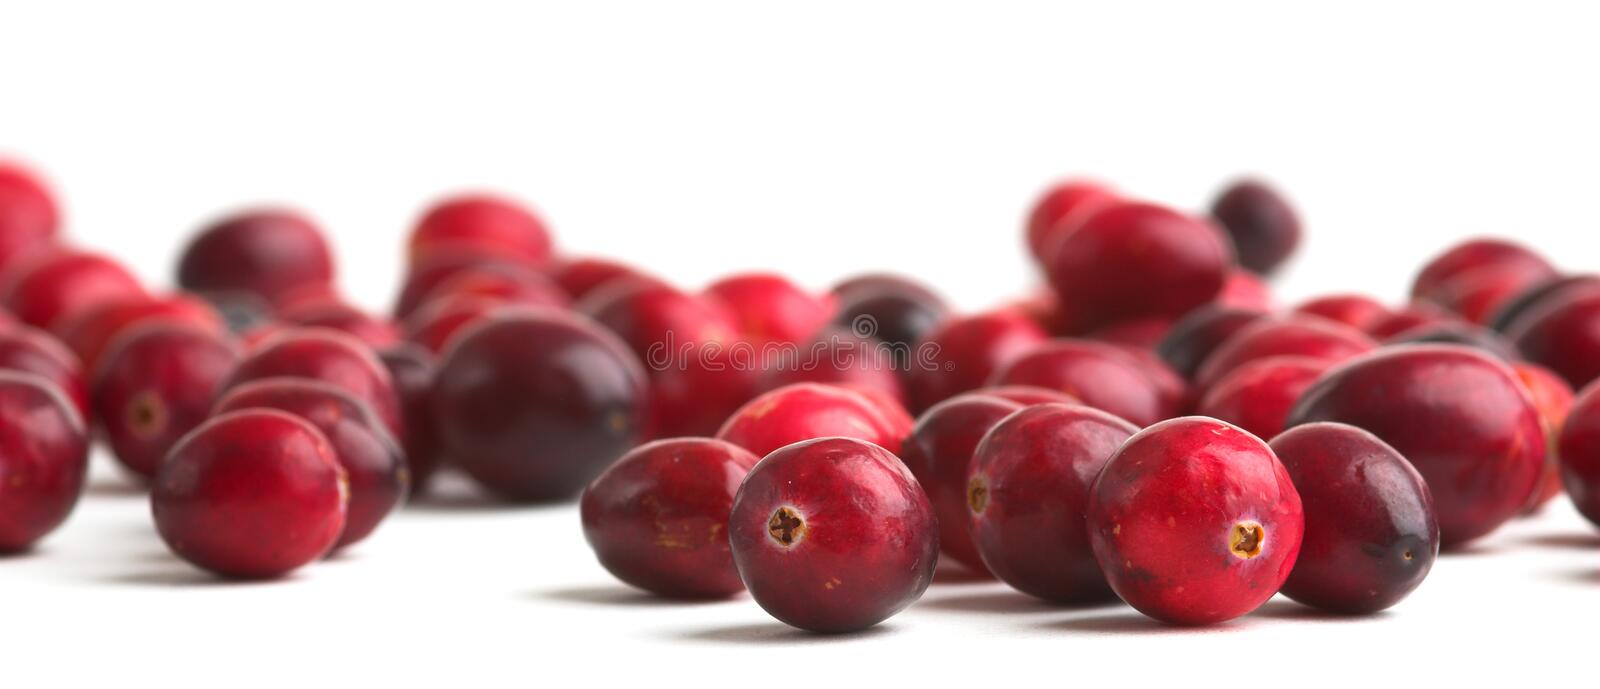 Fresh Cranberries. Cranberries against a white background royalty free stock photos